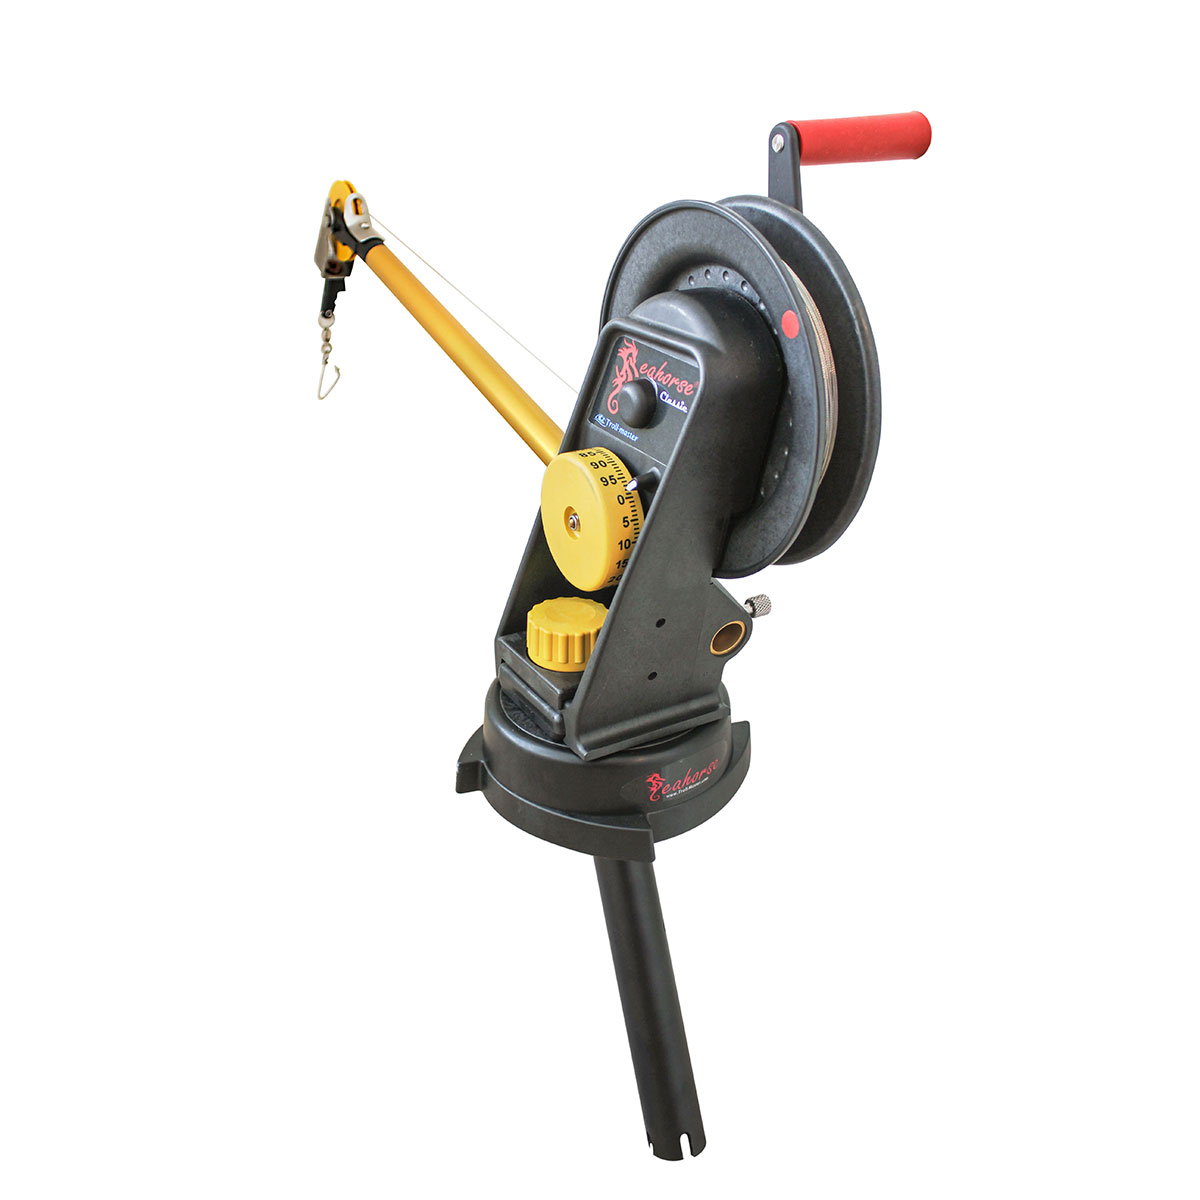 Troll-Master Seahorse AR-2000 Downrigger with AR-1021 Swivel Base and PR-1030 Gimbal Mount